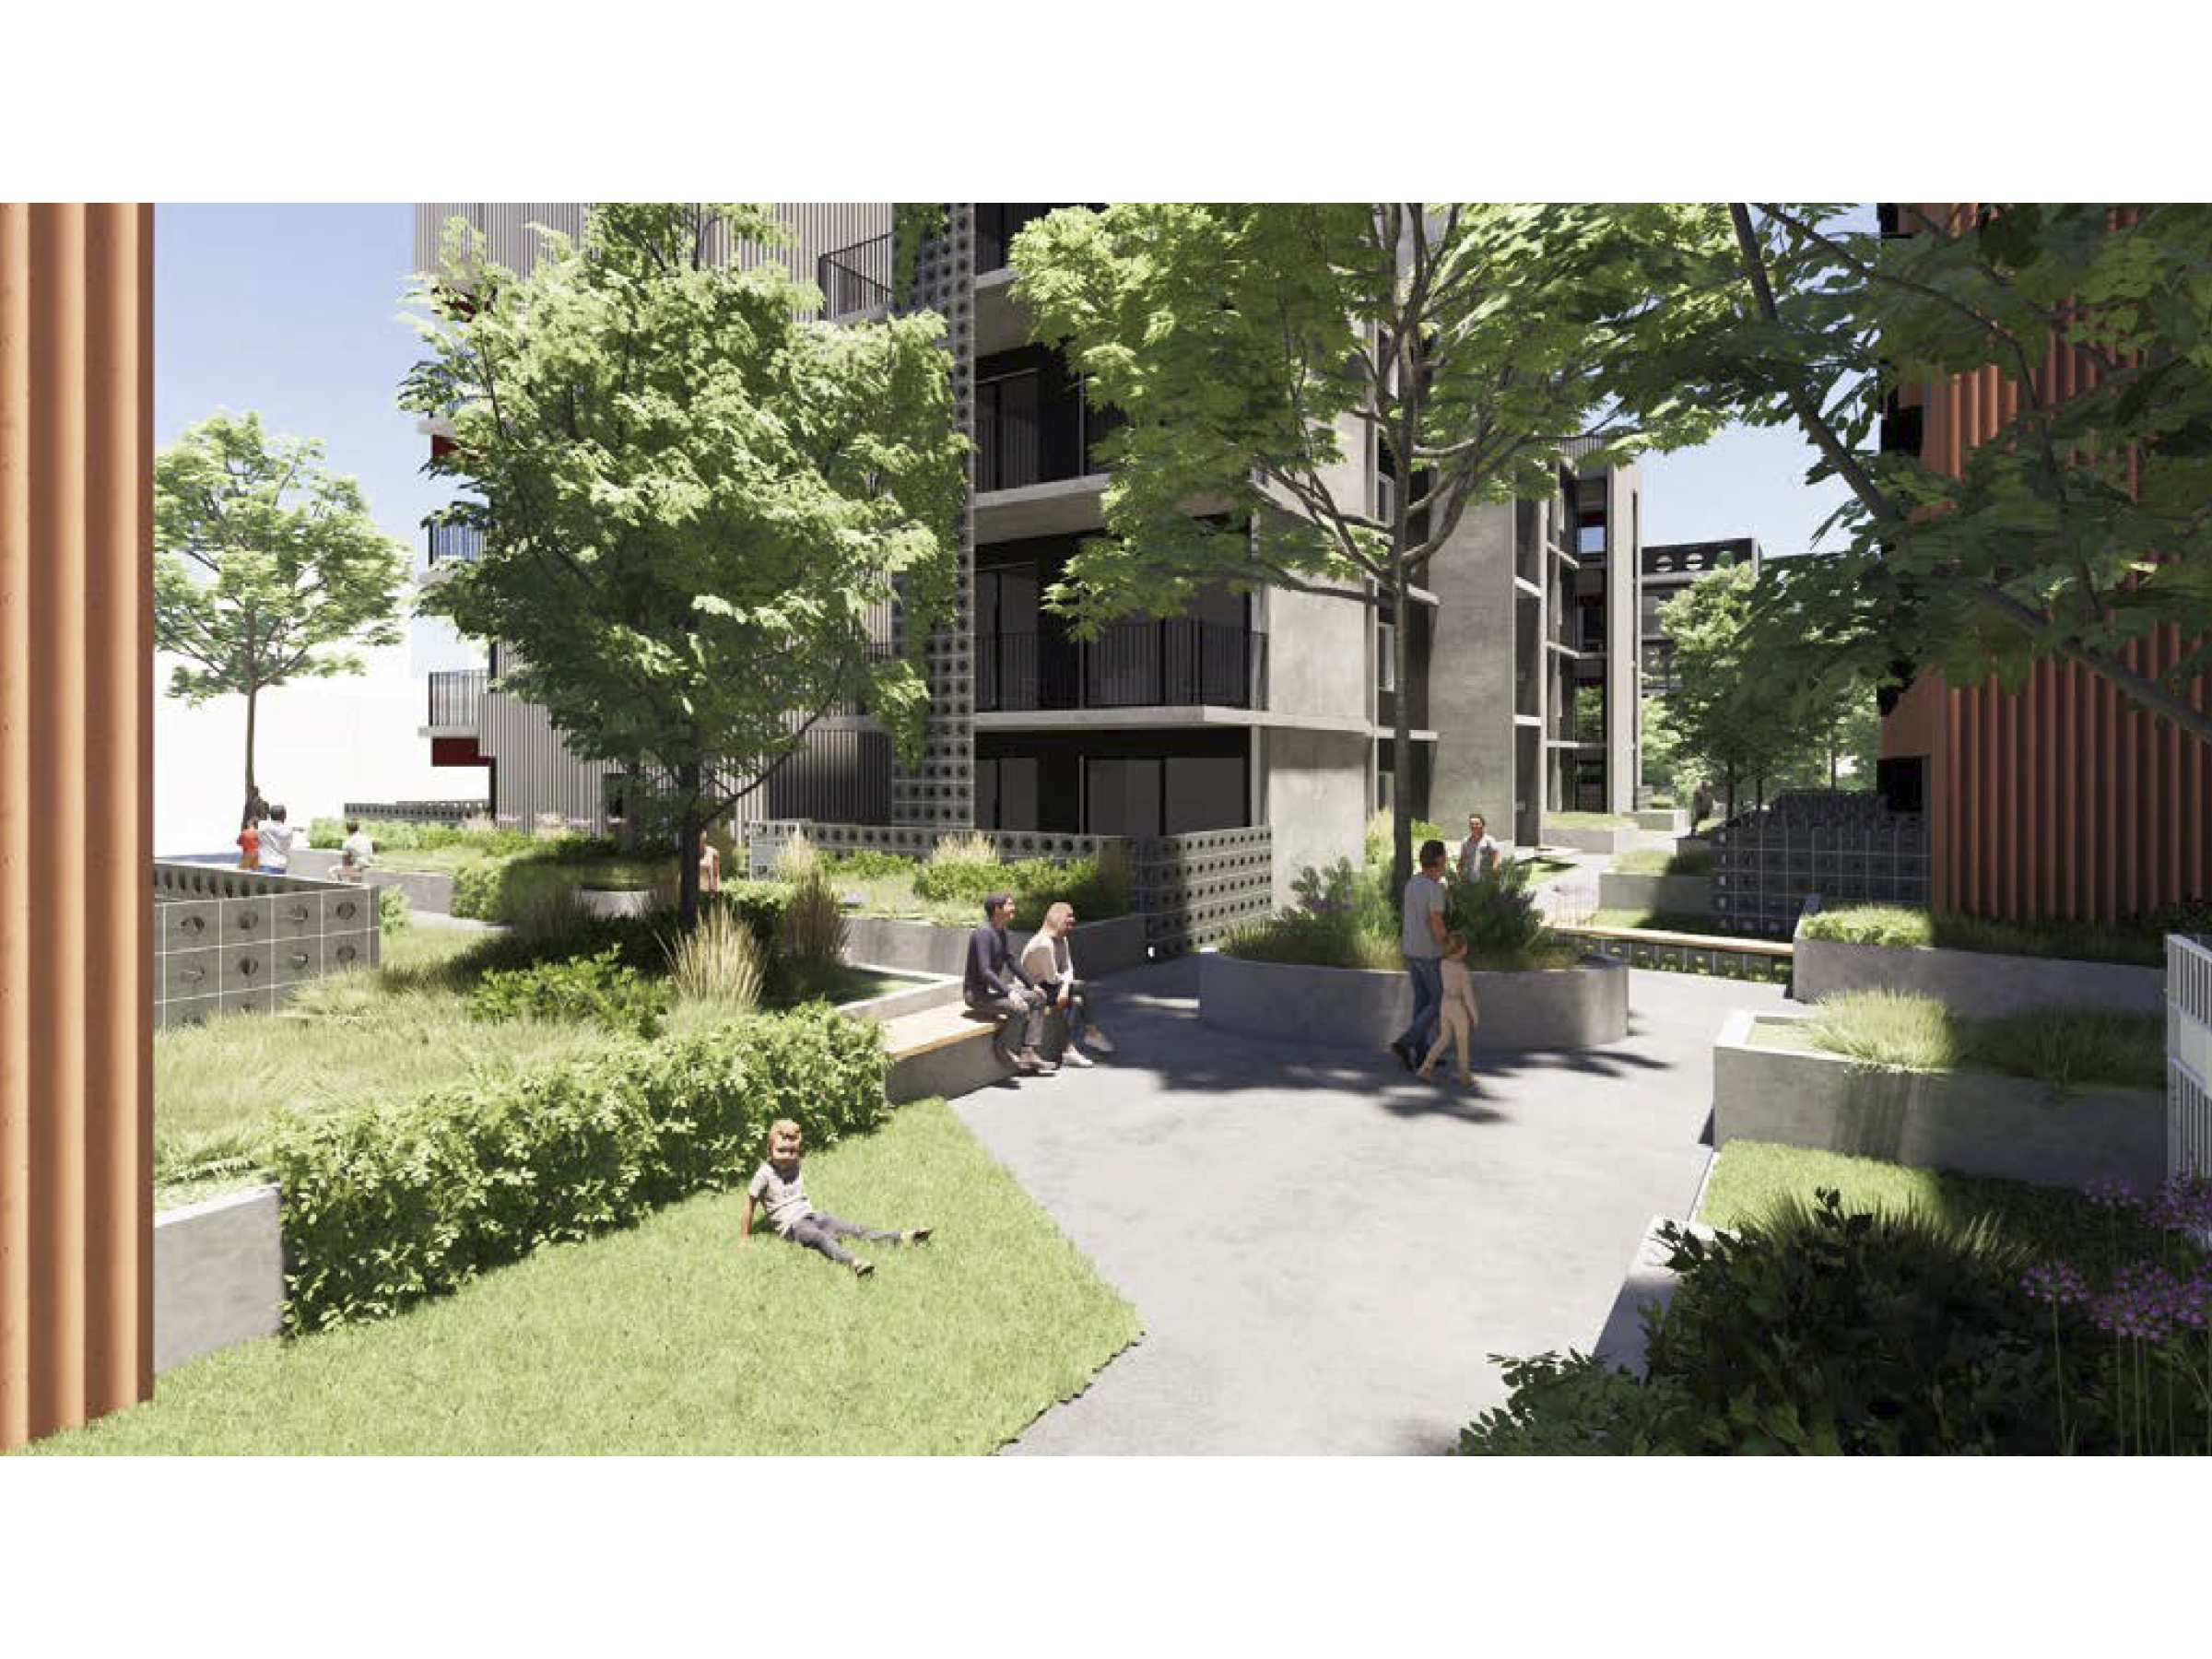 Artist impression of the new development showing the internal courtyard